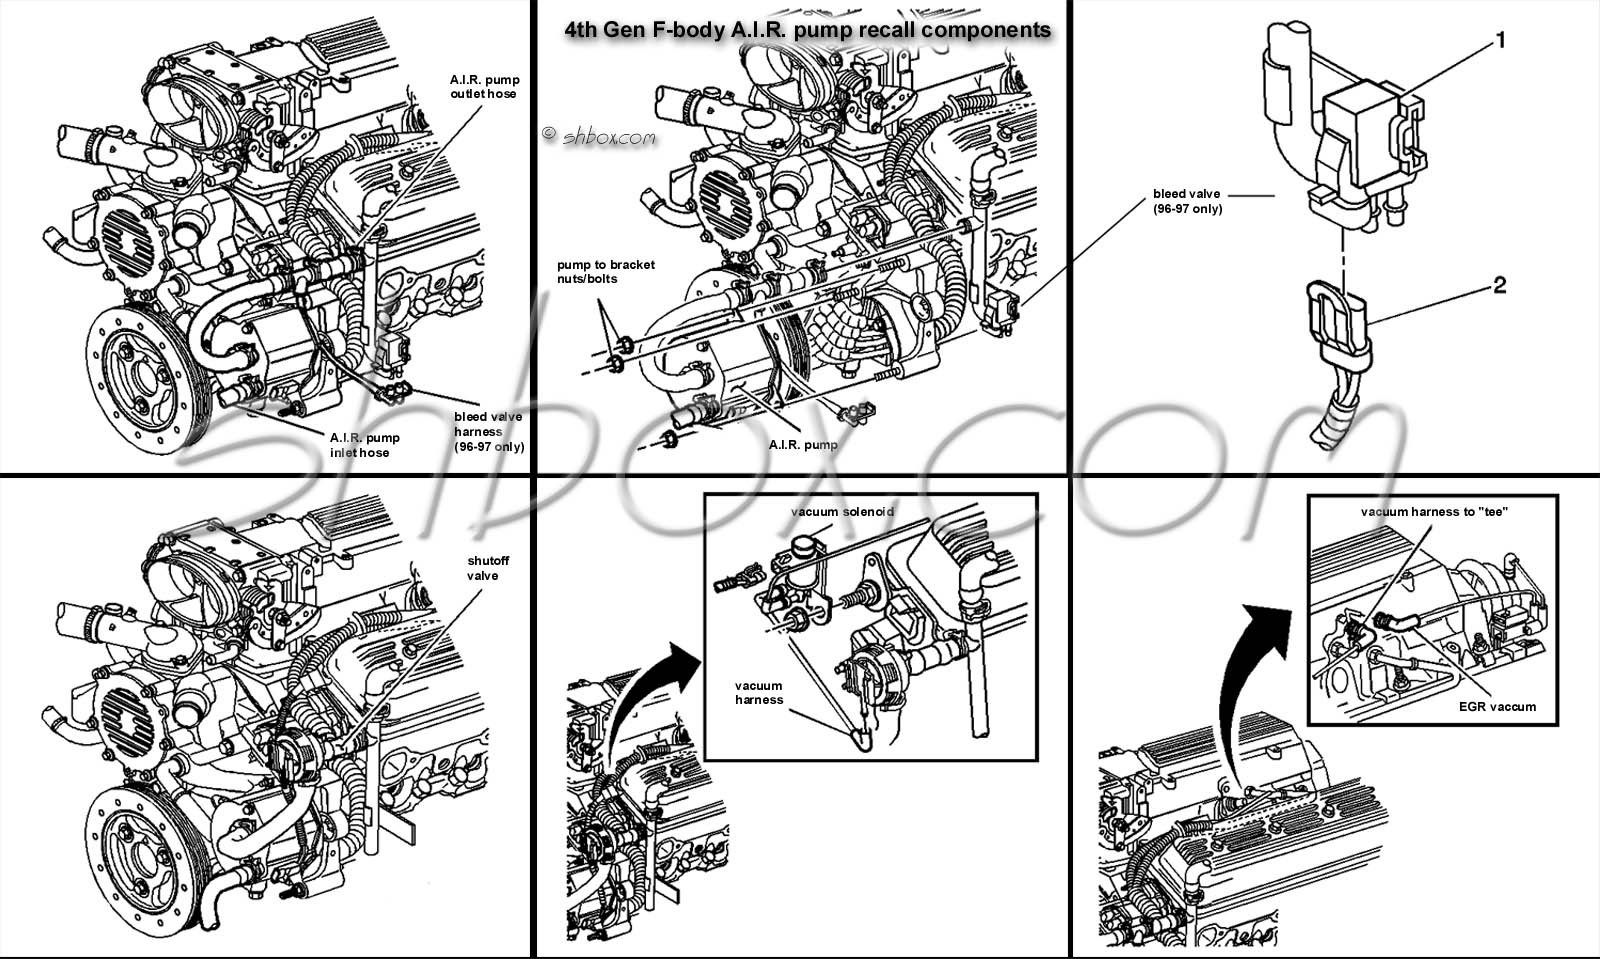 hight resolution of wiring diagram for engine for 1997 camaro z28 wiring diagram mega 1997 camaro engine diagram wiring